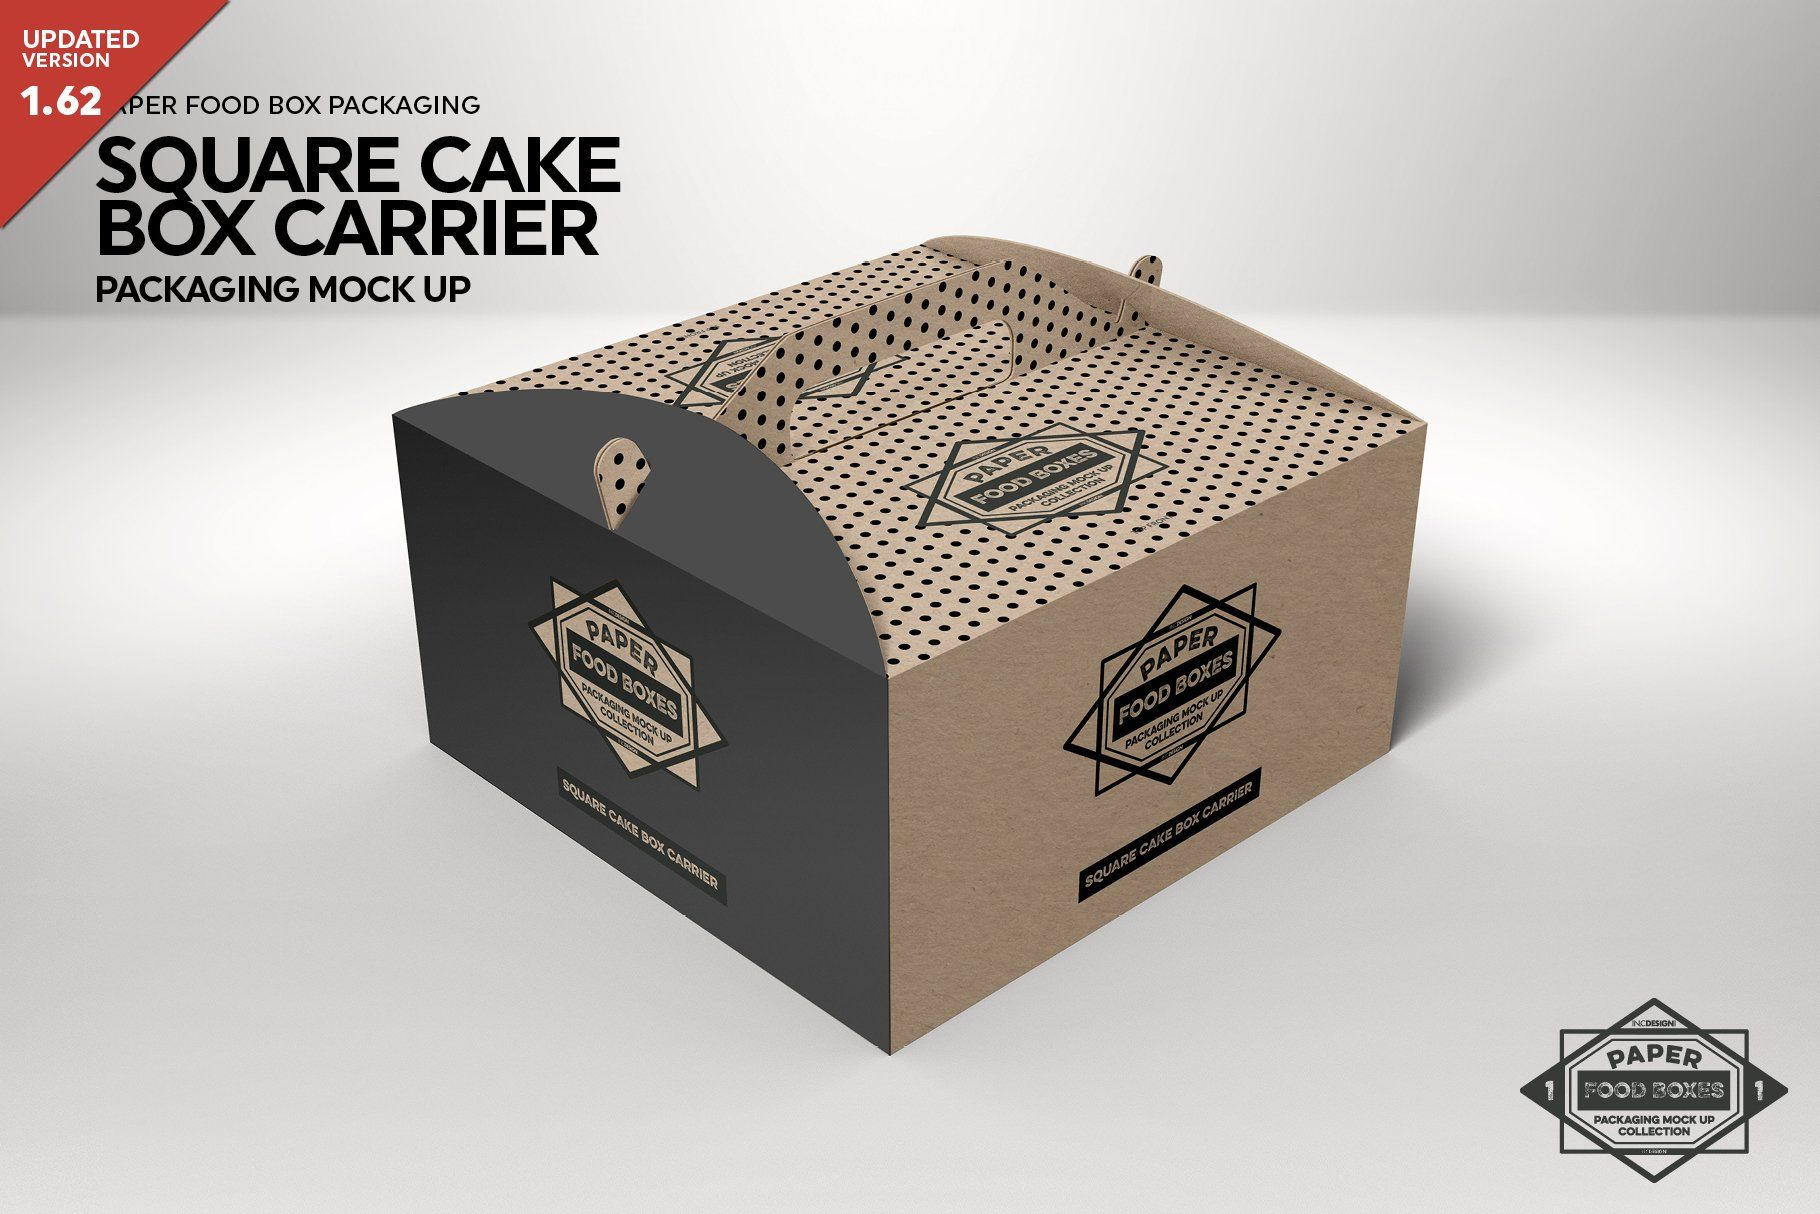 Square Cake Carrier Packaging Mockup Ad Affiliate Presentations Perfect Psd Work Packaging Mockup Free Packaging Mockup Design Mockup Free